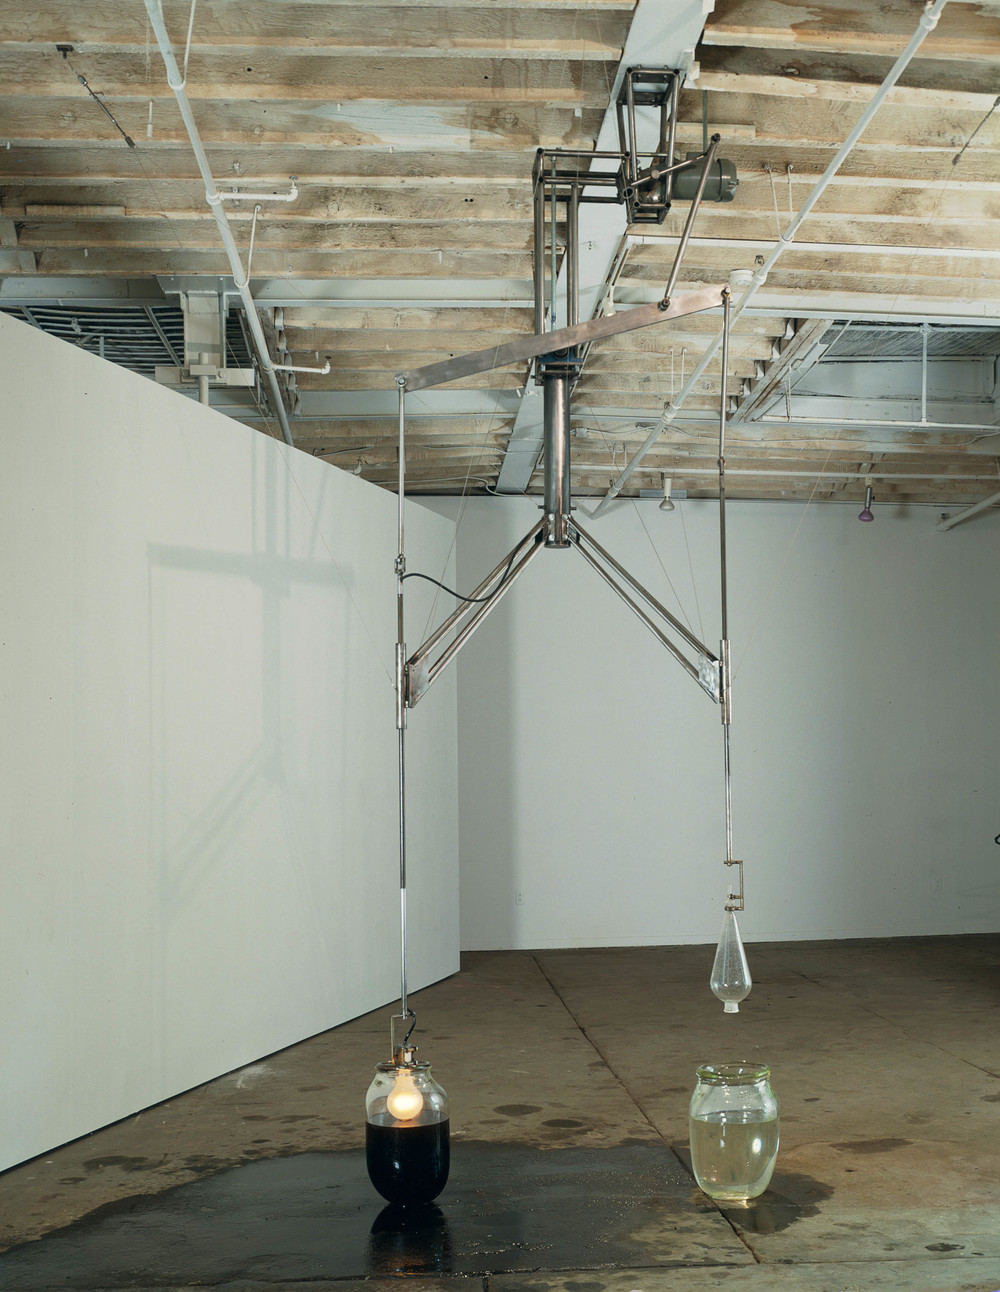 Lusts, 1992, Glass, water, lightbulb, steel, and motor oil, 100 x 20 inches